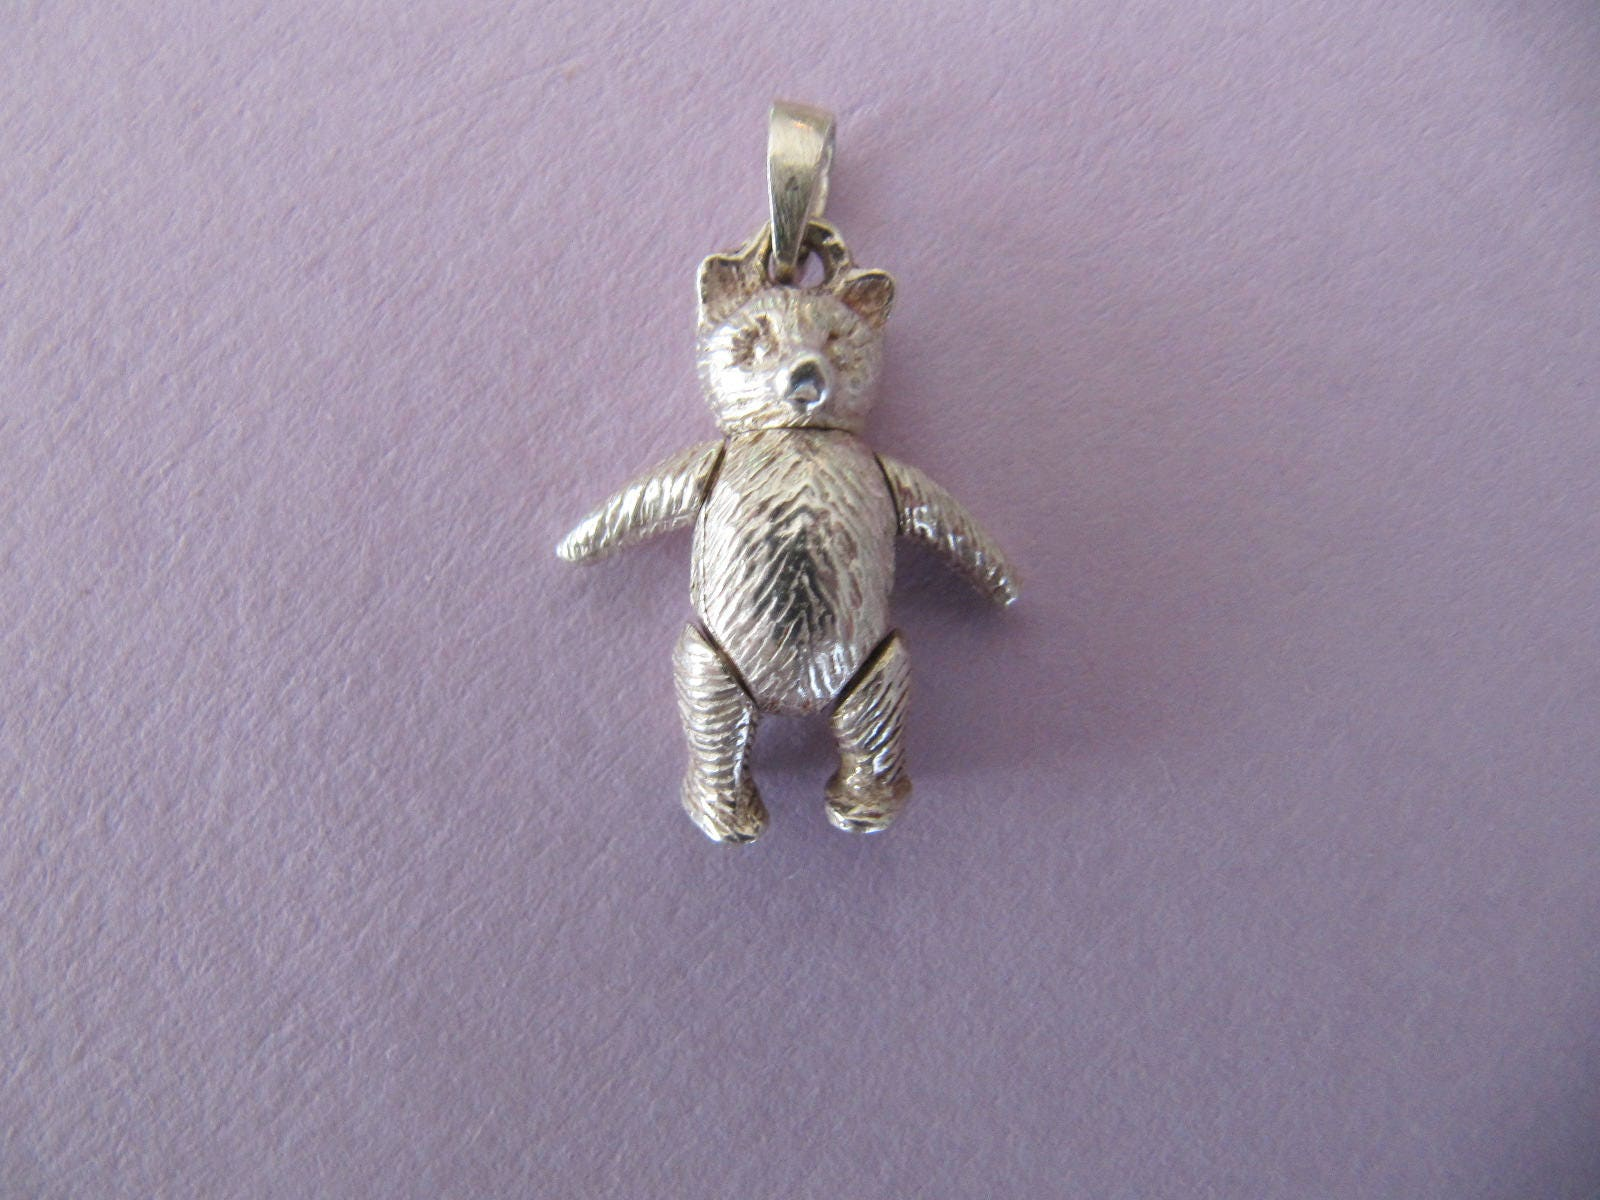 Vintage sterling silver teddy bear pendant jointed moveable teddy vintage sterling silver teddy bear pendant jointed moveable teddy necklace pendant silver bear charms aloadofball Images